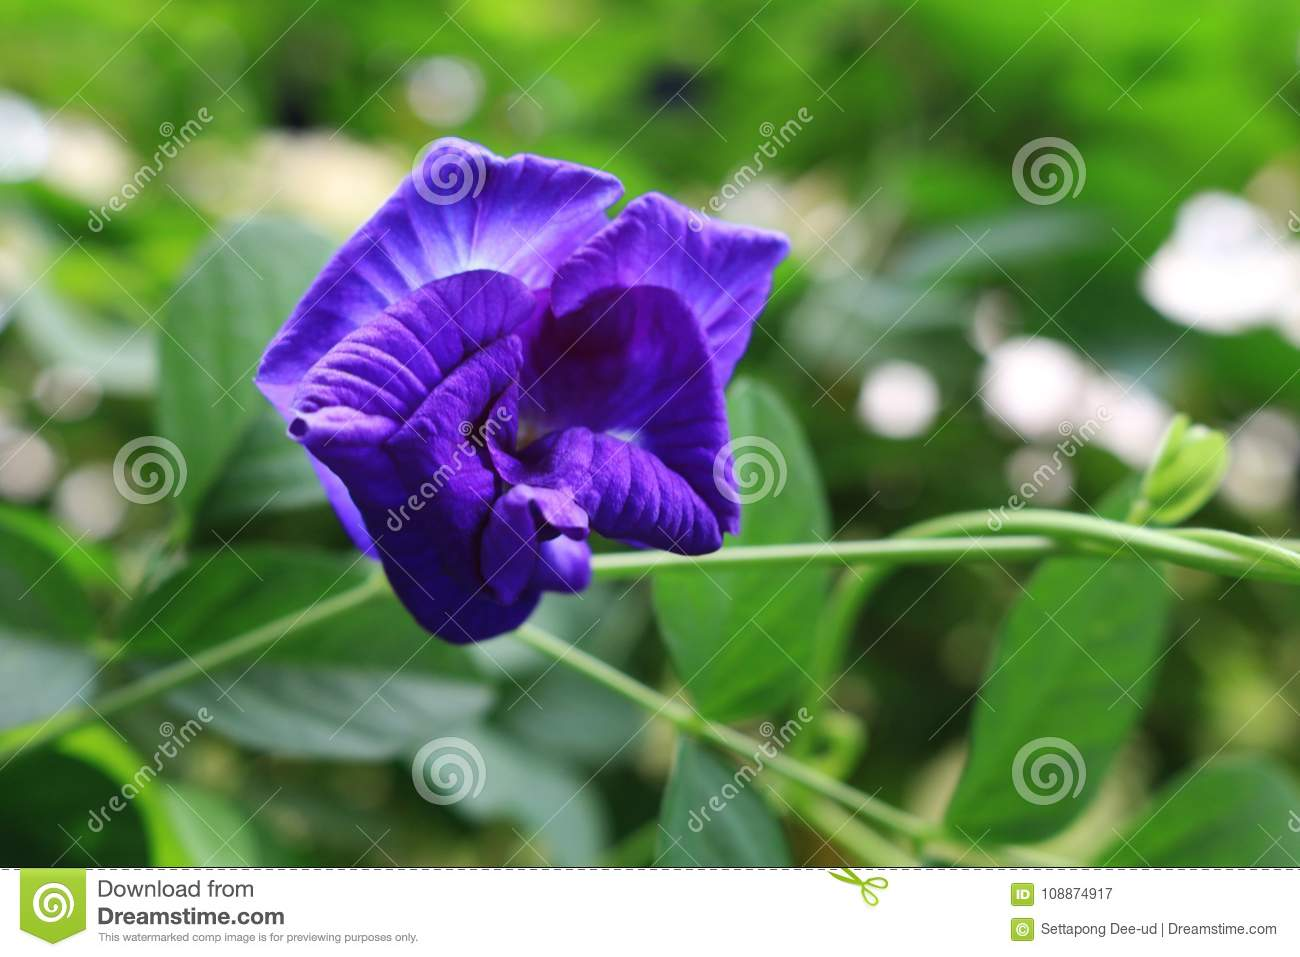 Butterfly pea vine plant with blue or purple flower on plant stock download butterfly pea vine plant with blue or purple flower on plant stock image image mightylinksfo